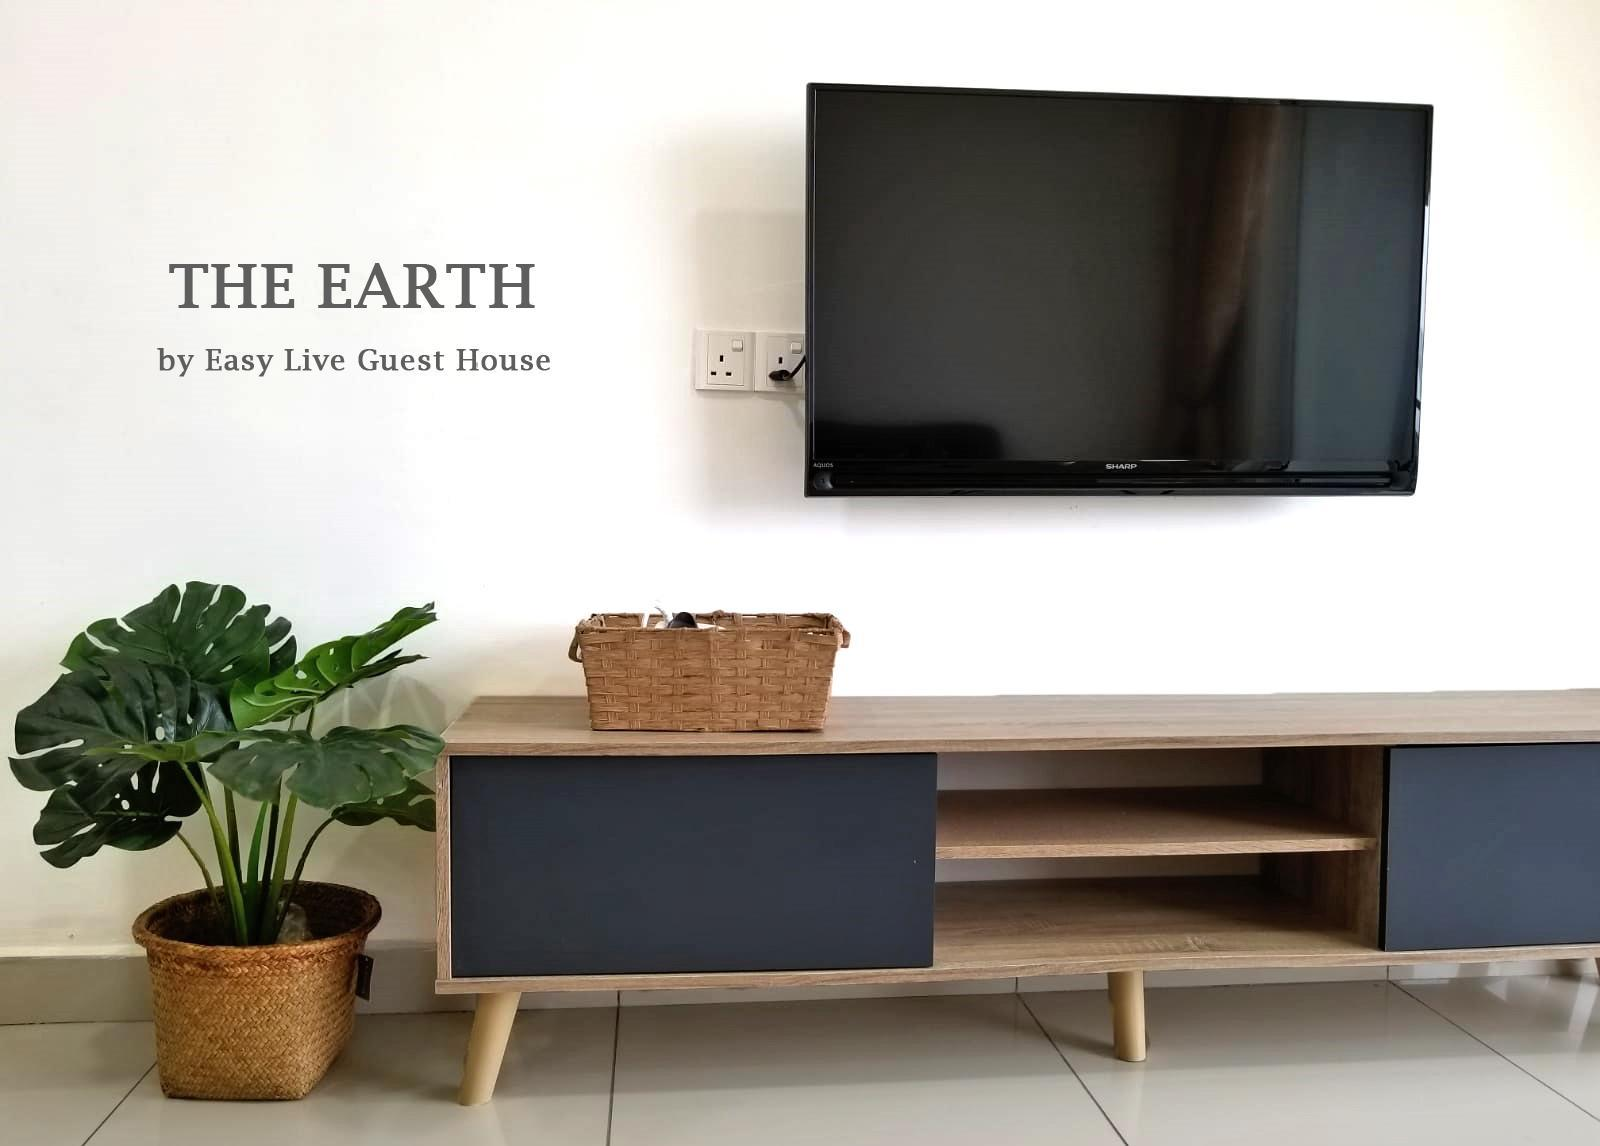 THE EARTH @ The Majestic By Easy Live Guest House